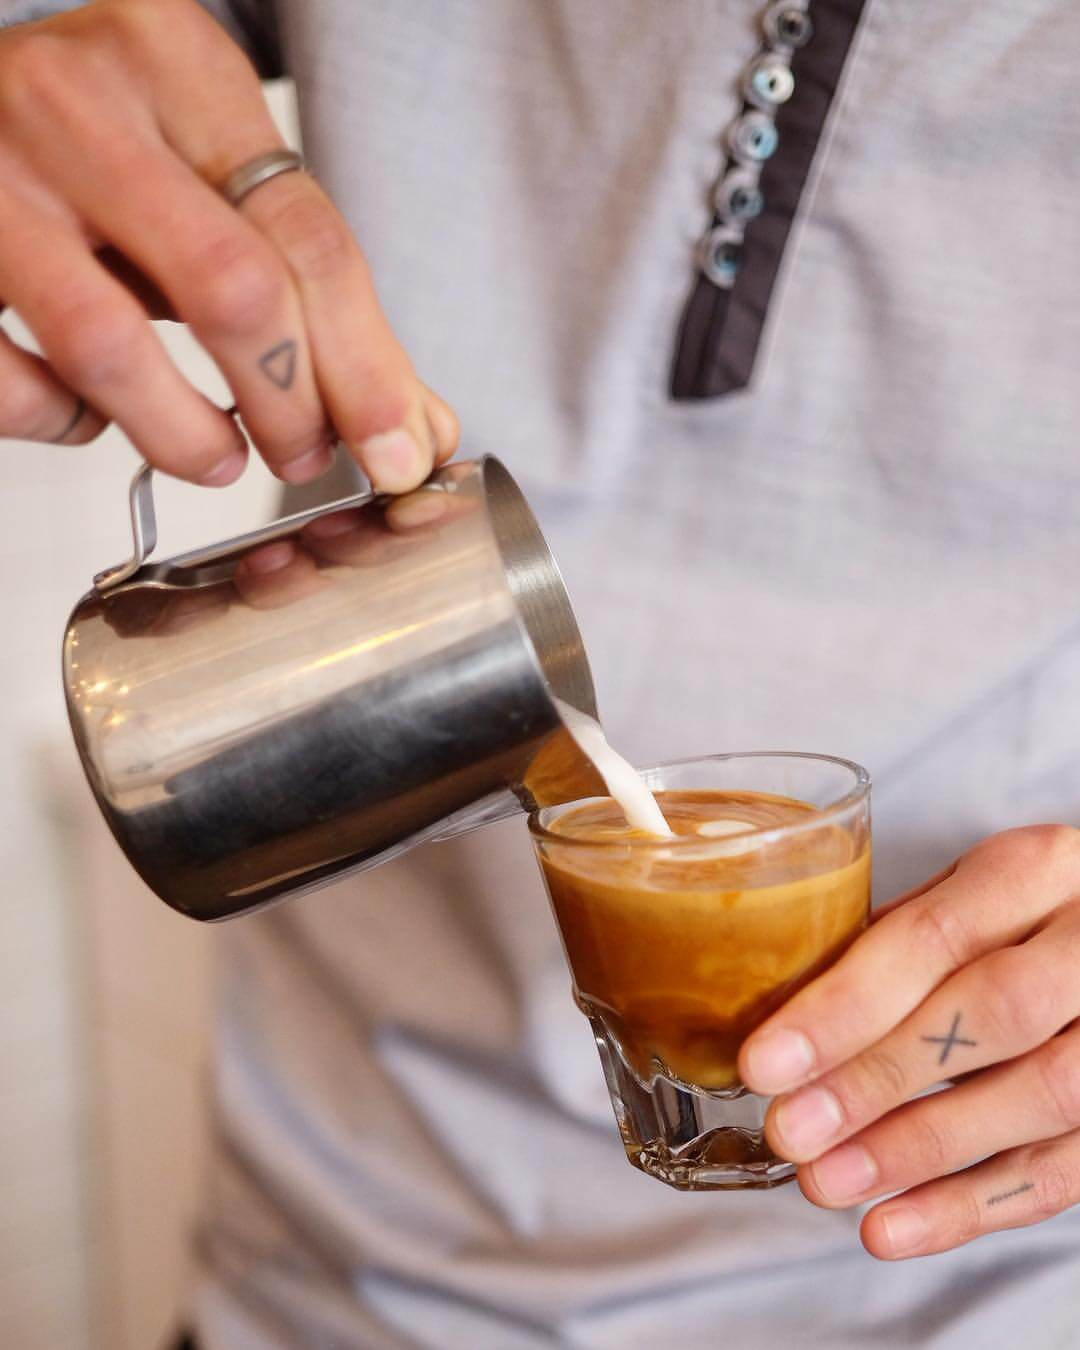 Best Iced Lattes in San Diego, Best Iced latte in San Diego, Best Iced coffee in San Diego, iced lattes in san diego, best lattes in san diego, lattes in san diego, best coffee shops san diego, iced latte